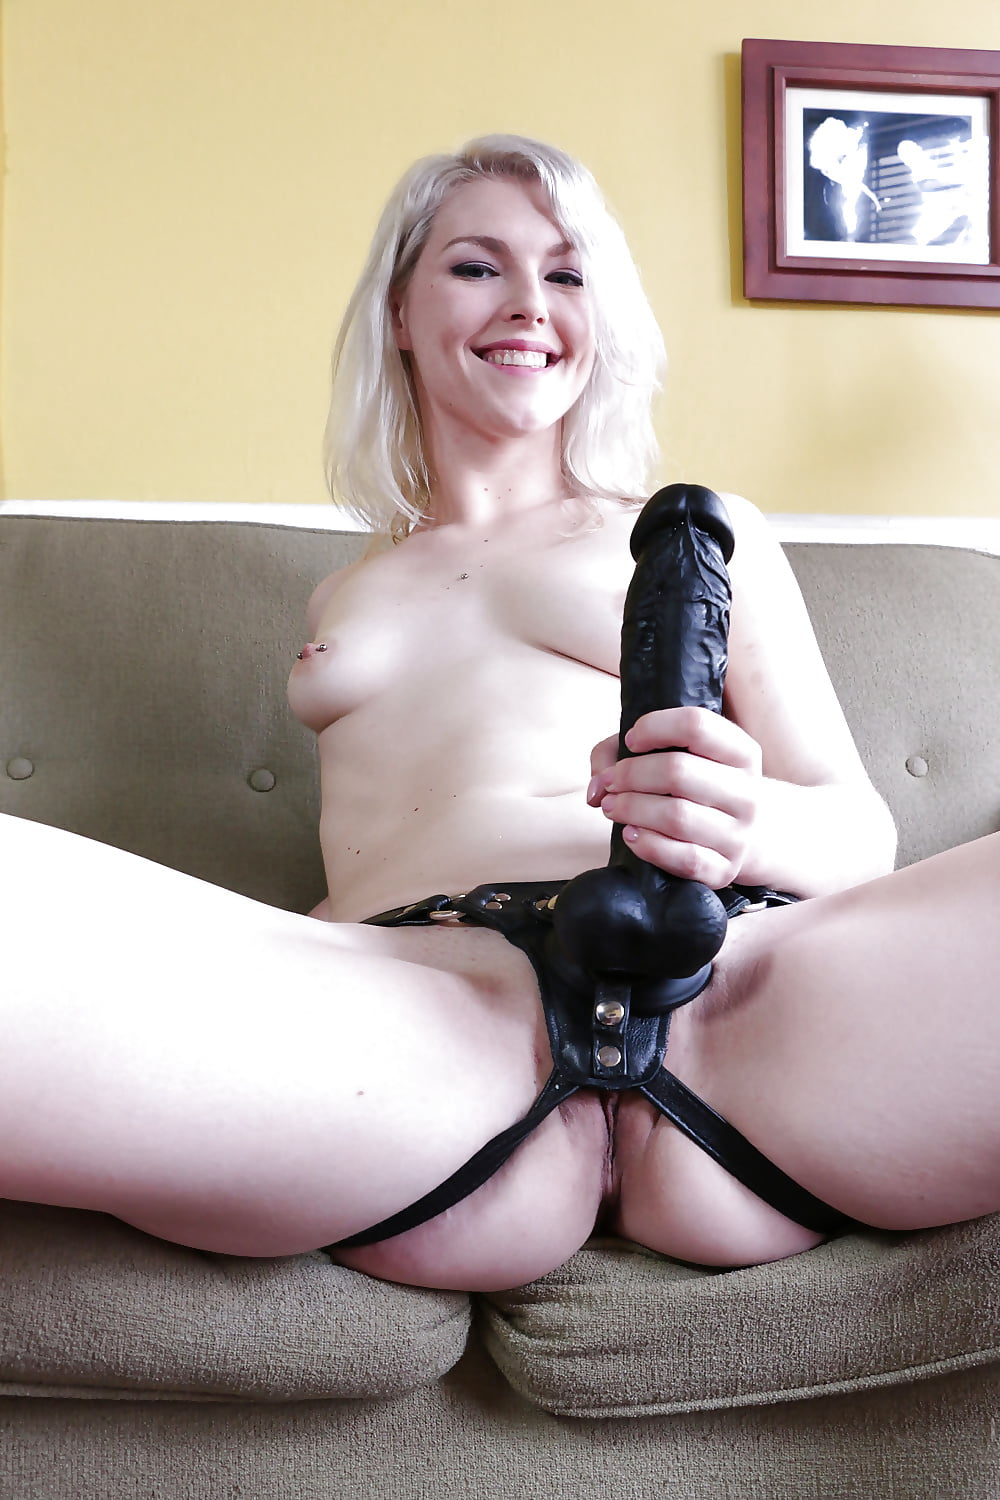 That big dildo